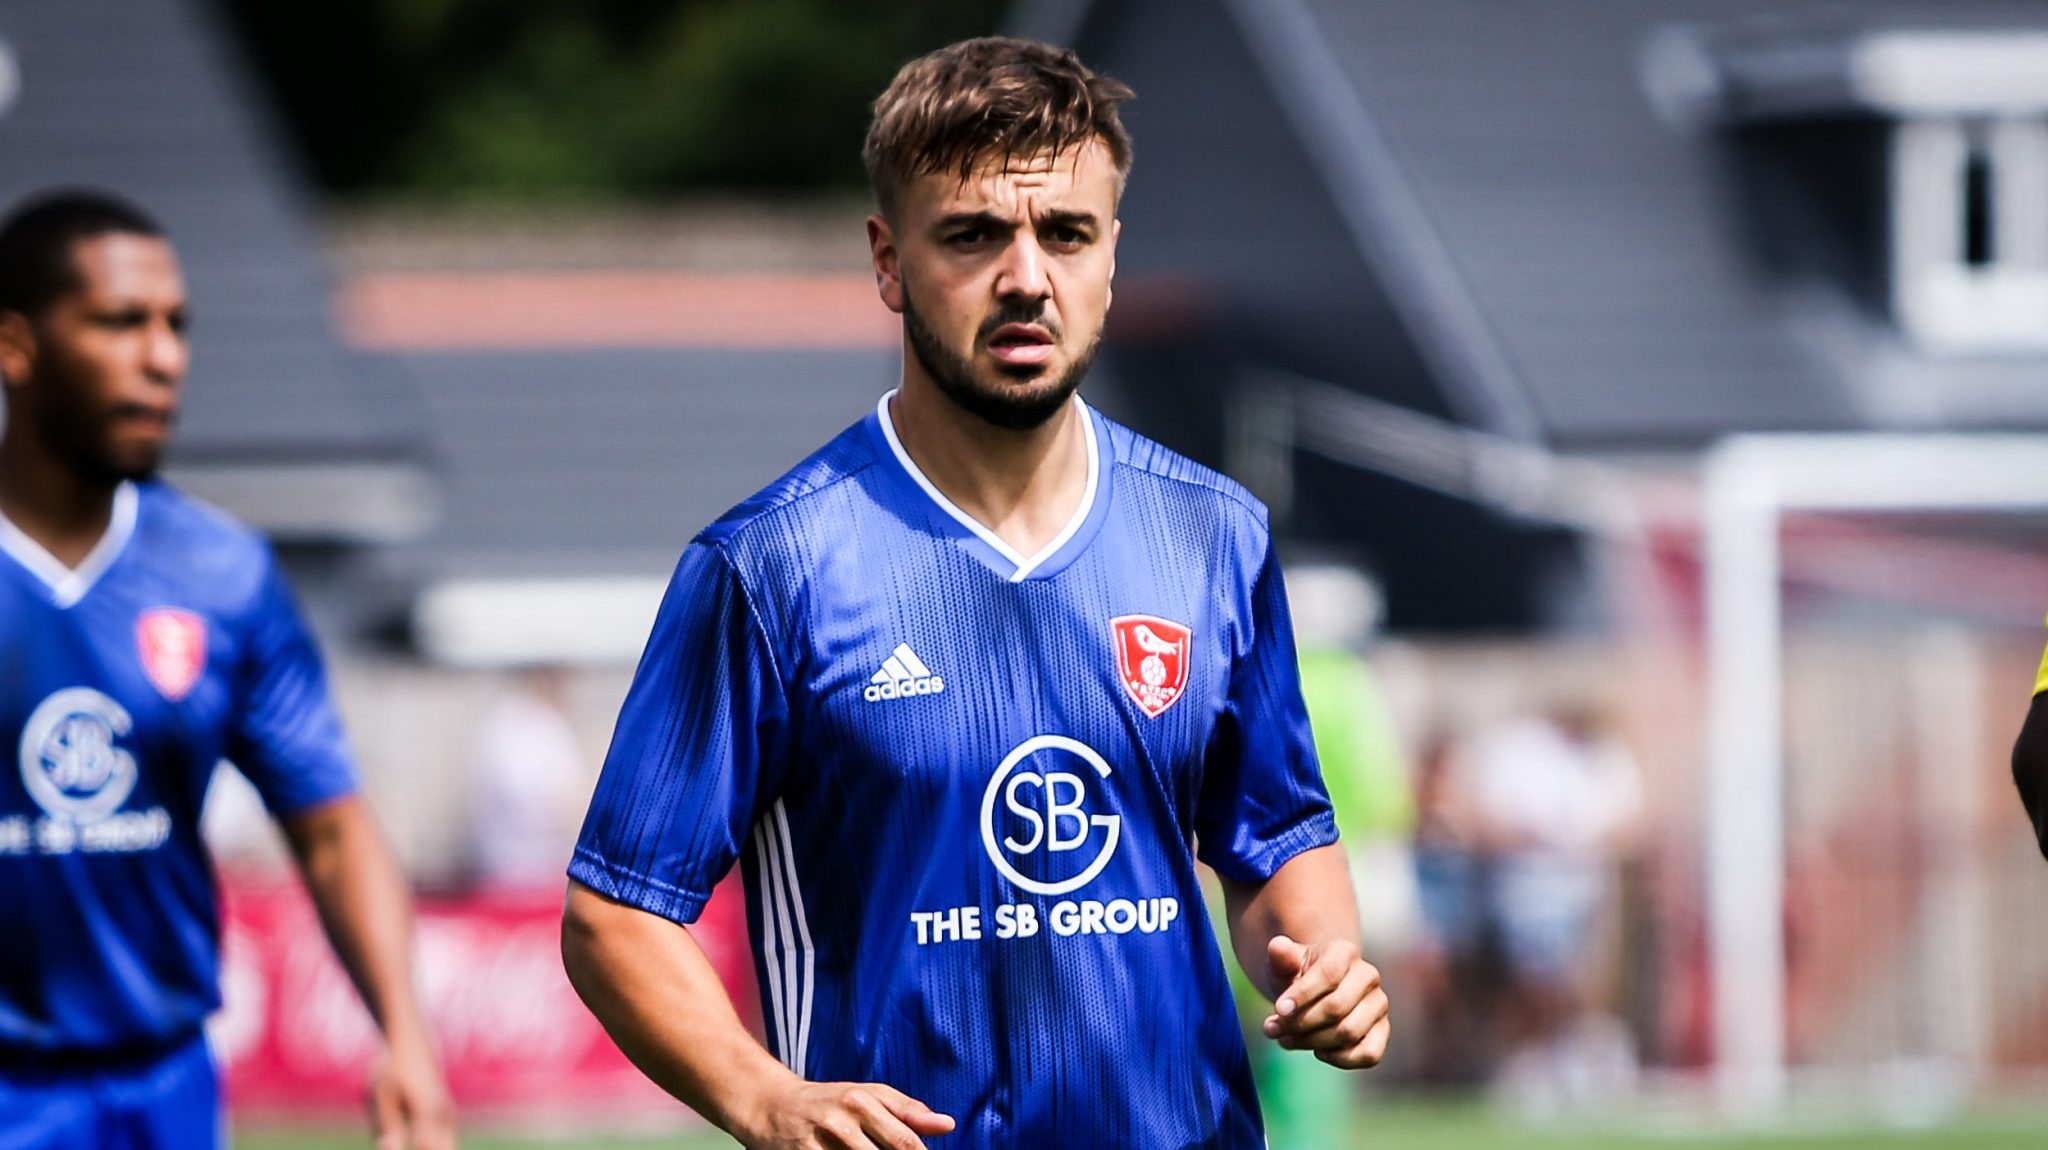 Bracknell Town defender Elliot Legg signs for Marlow